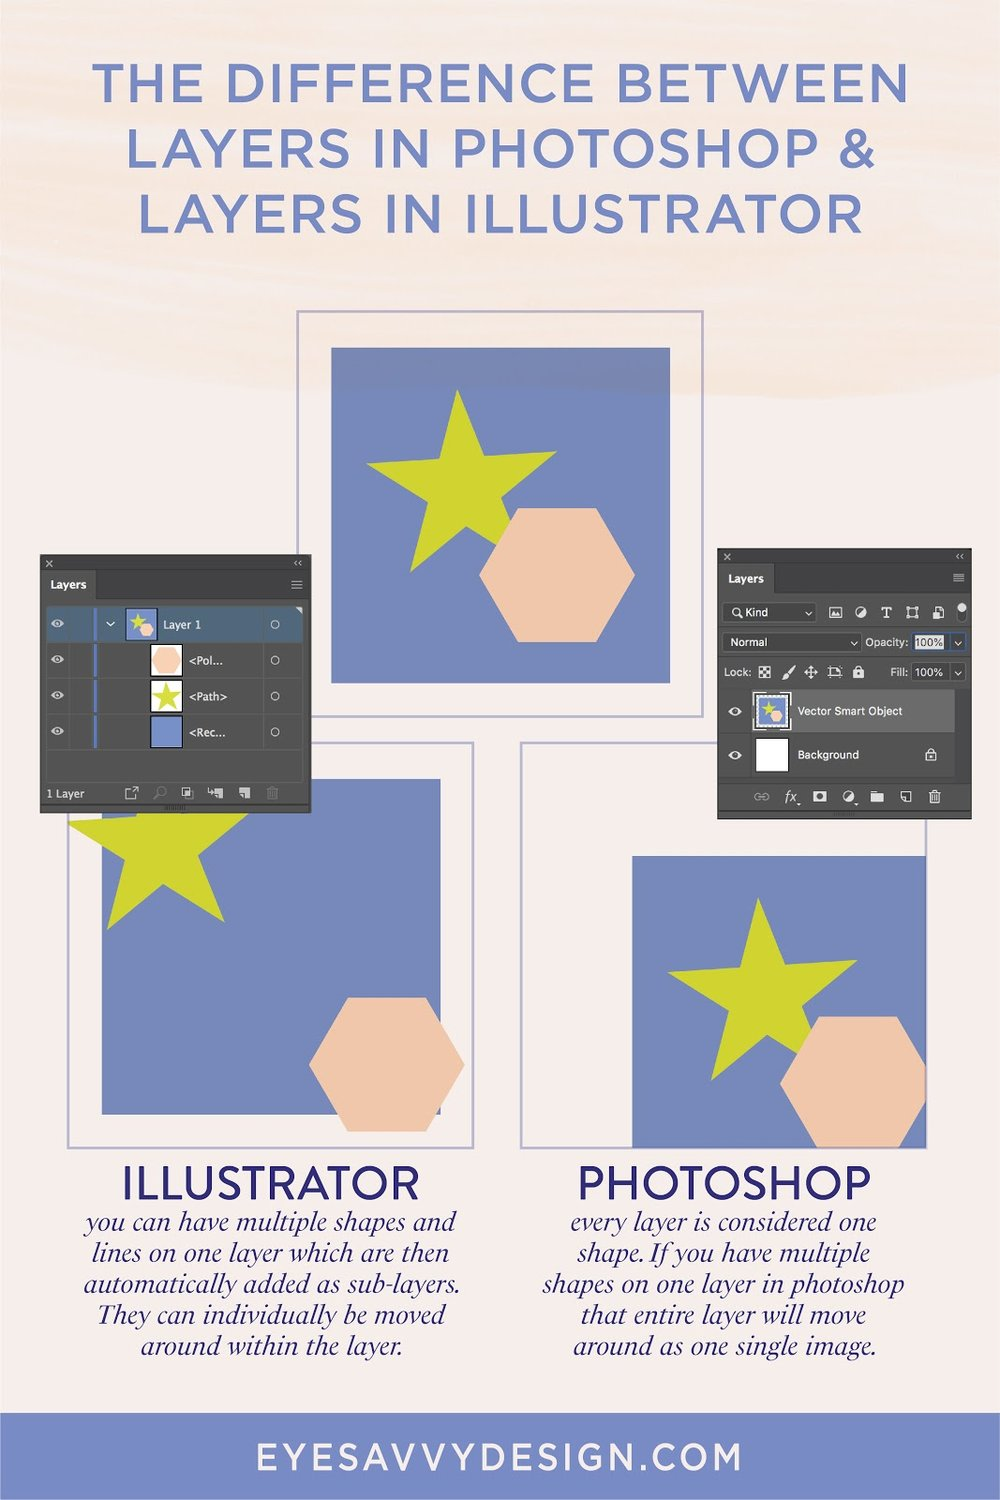 Have you ever thought about using Adobe Illustrator or Photoshop for your business? Adobe Illustrator gives you more freedom to change image size without affecting the entire image layer. This is why I think you should invest in Adobe Illustrator over Photoshop. Click through to read the whole blog post. Eye Savvy | Kiki Bakowski #AdobeIllustratorTips #IllustratorTipsAndTricks #AdobeIllustrator #Illustrator #IllustratorvsPhotoshop